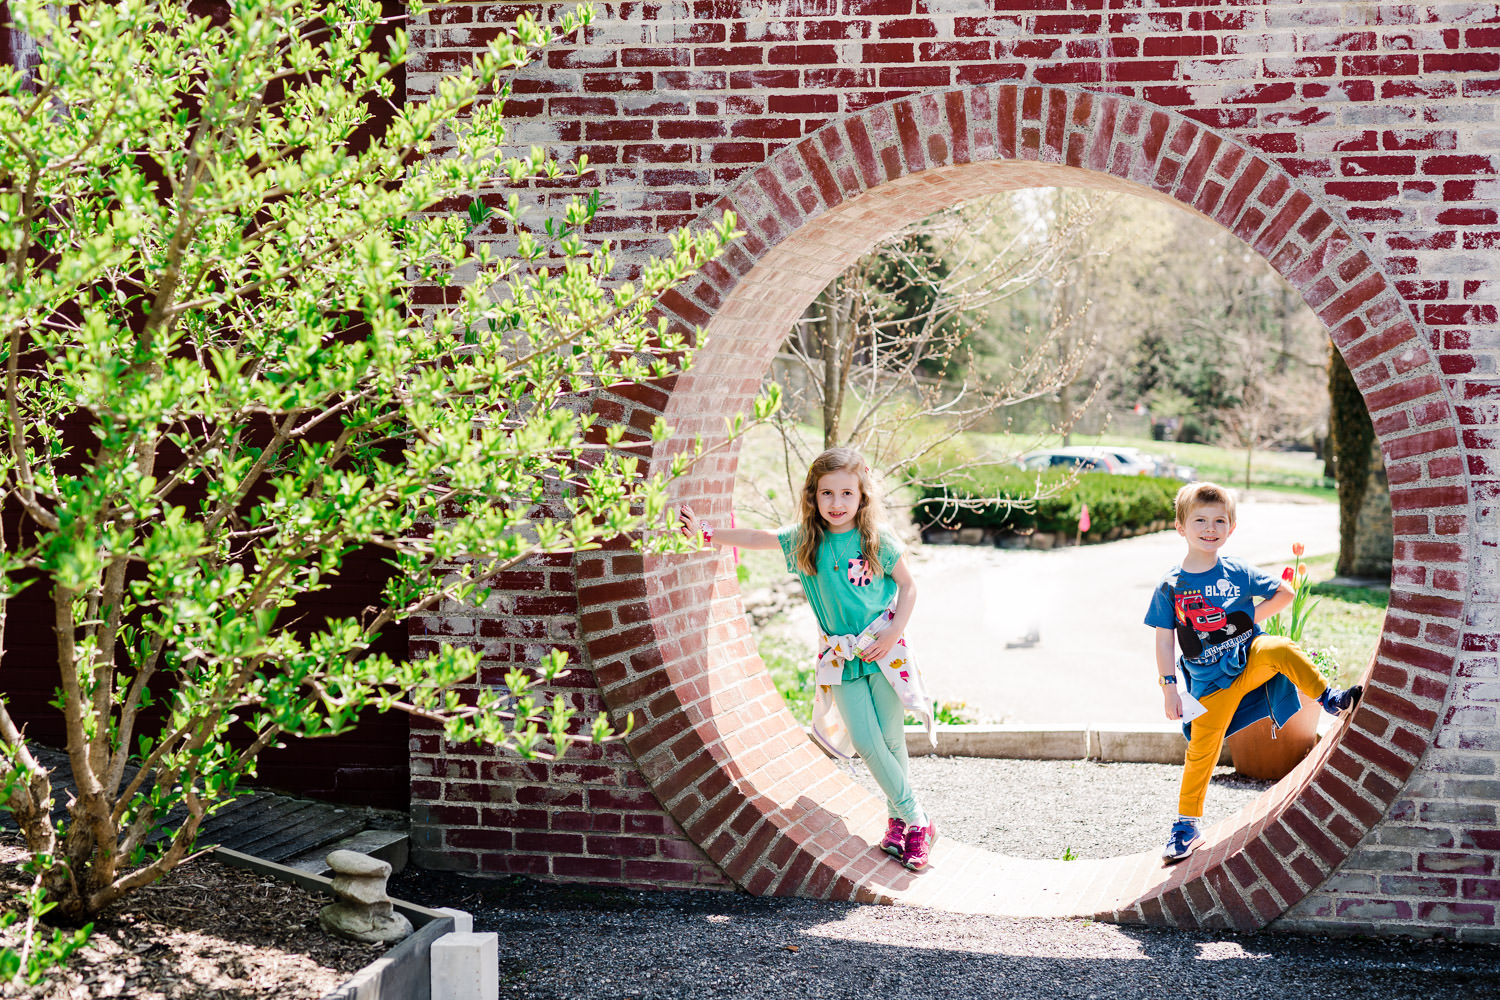 Two children stand in a circular entryway through a brick wall.